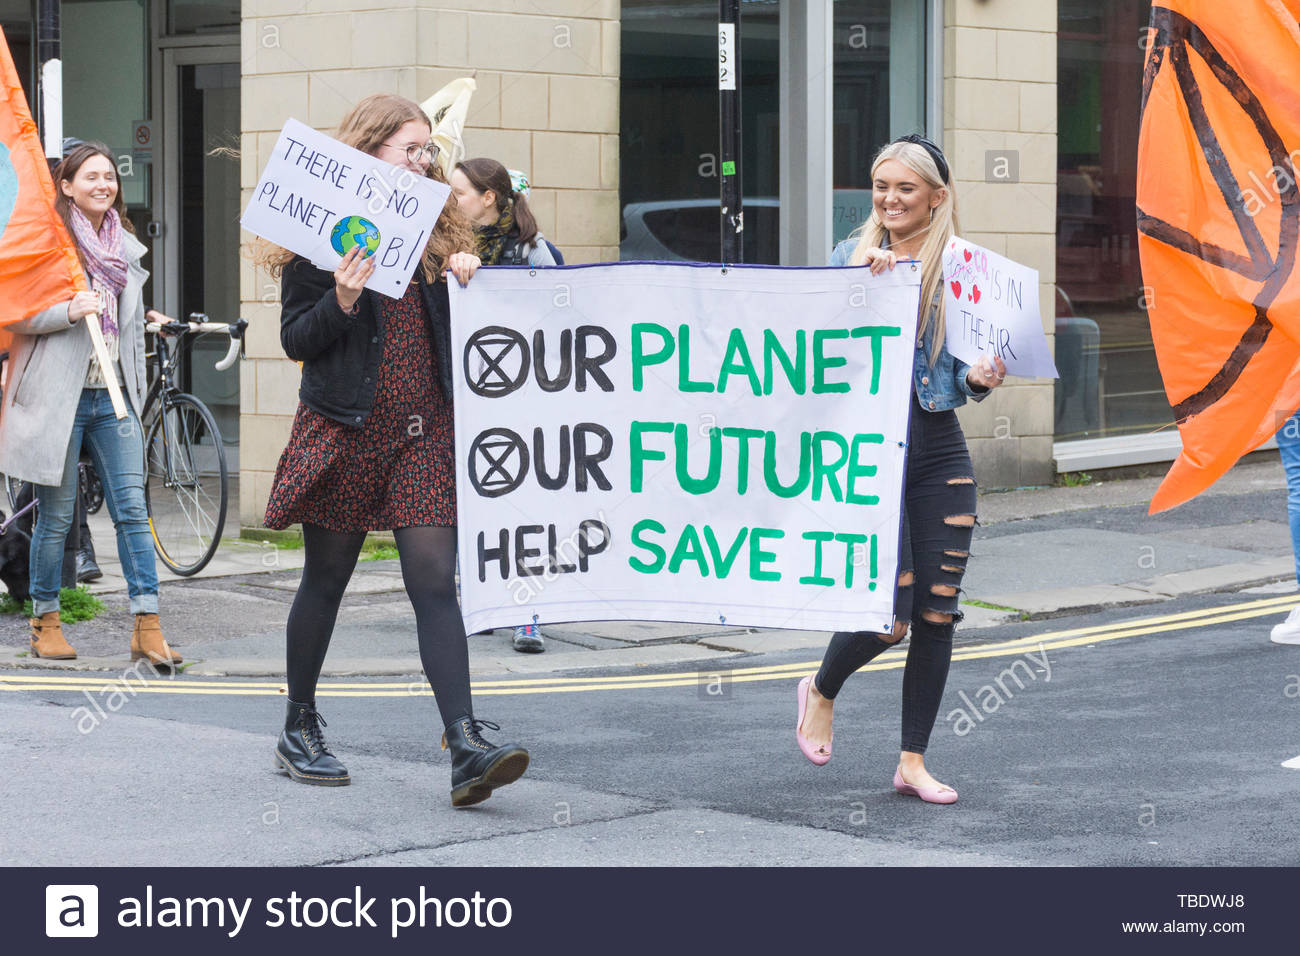 Lancaster, Lancashire, England, UK. 31st May, 2019. Morecambe Bay Extinction Rebels hold a second Critical Mass Event starting in Dalton Square, Lancaster to increase awareness of the impacts of Climate Change and to seek drastic action to reduce the increase in CO2 levels. - Stock Image